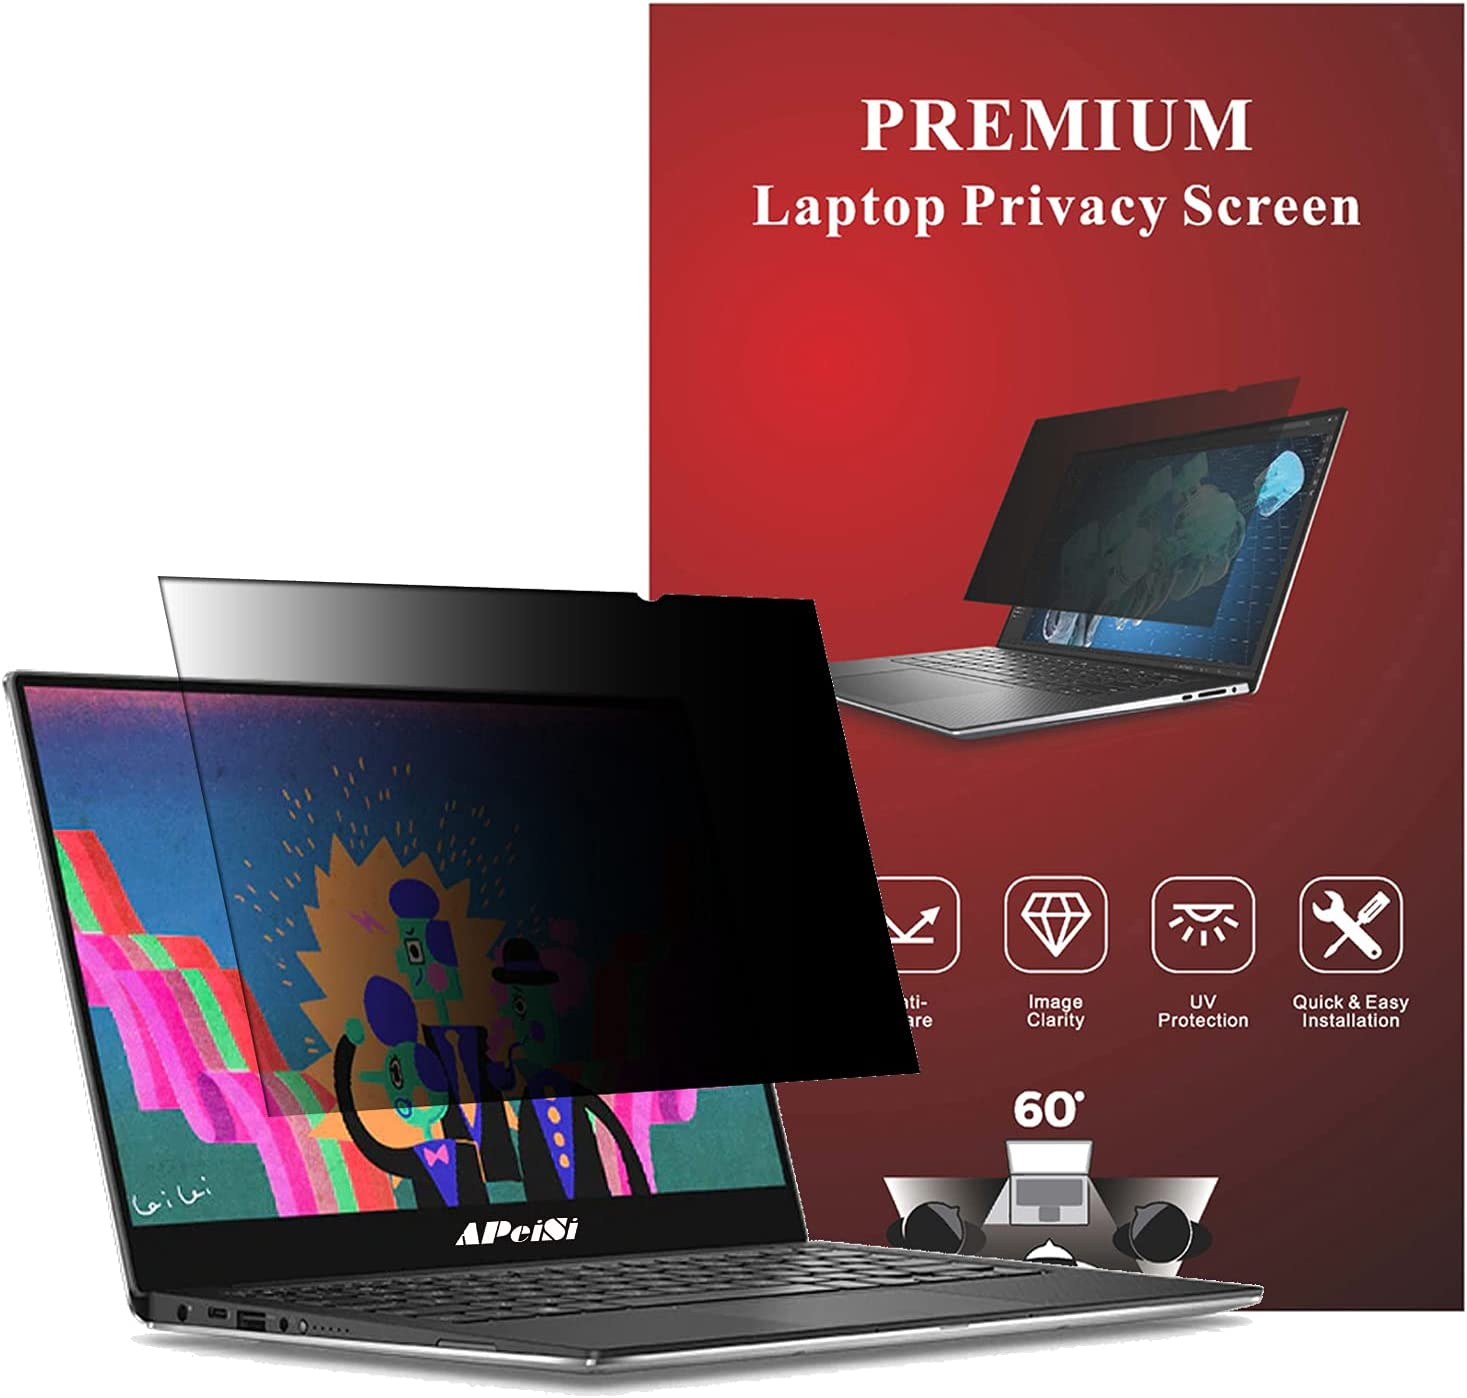 APeiSi 14 Inch Laptop Privacy Screen Filter for 16:9 Widescreen Computer Monitor Anti-Glare, Anti-Blue Light, Blocks 97% UV – Matte or Gloss Finish Privacy Filter Protector